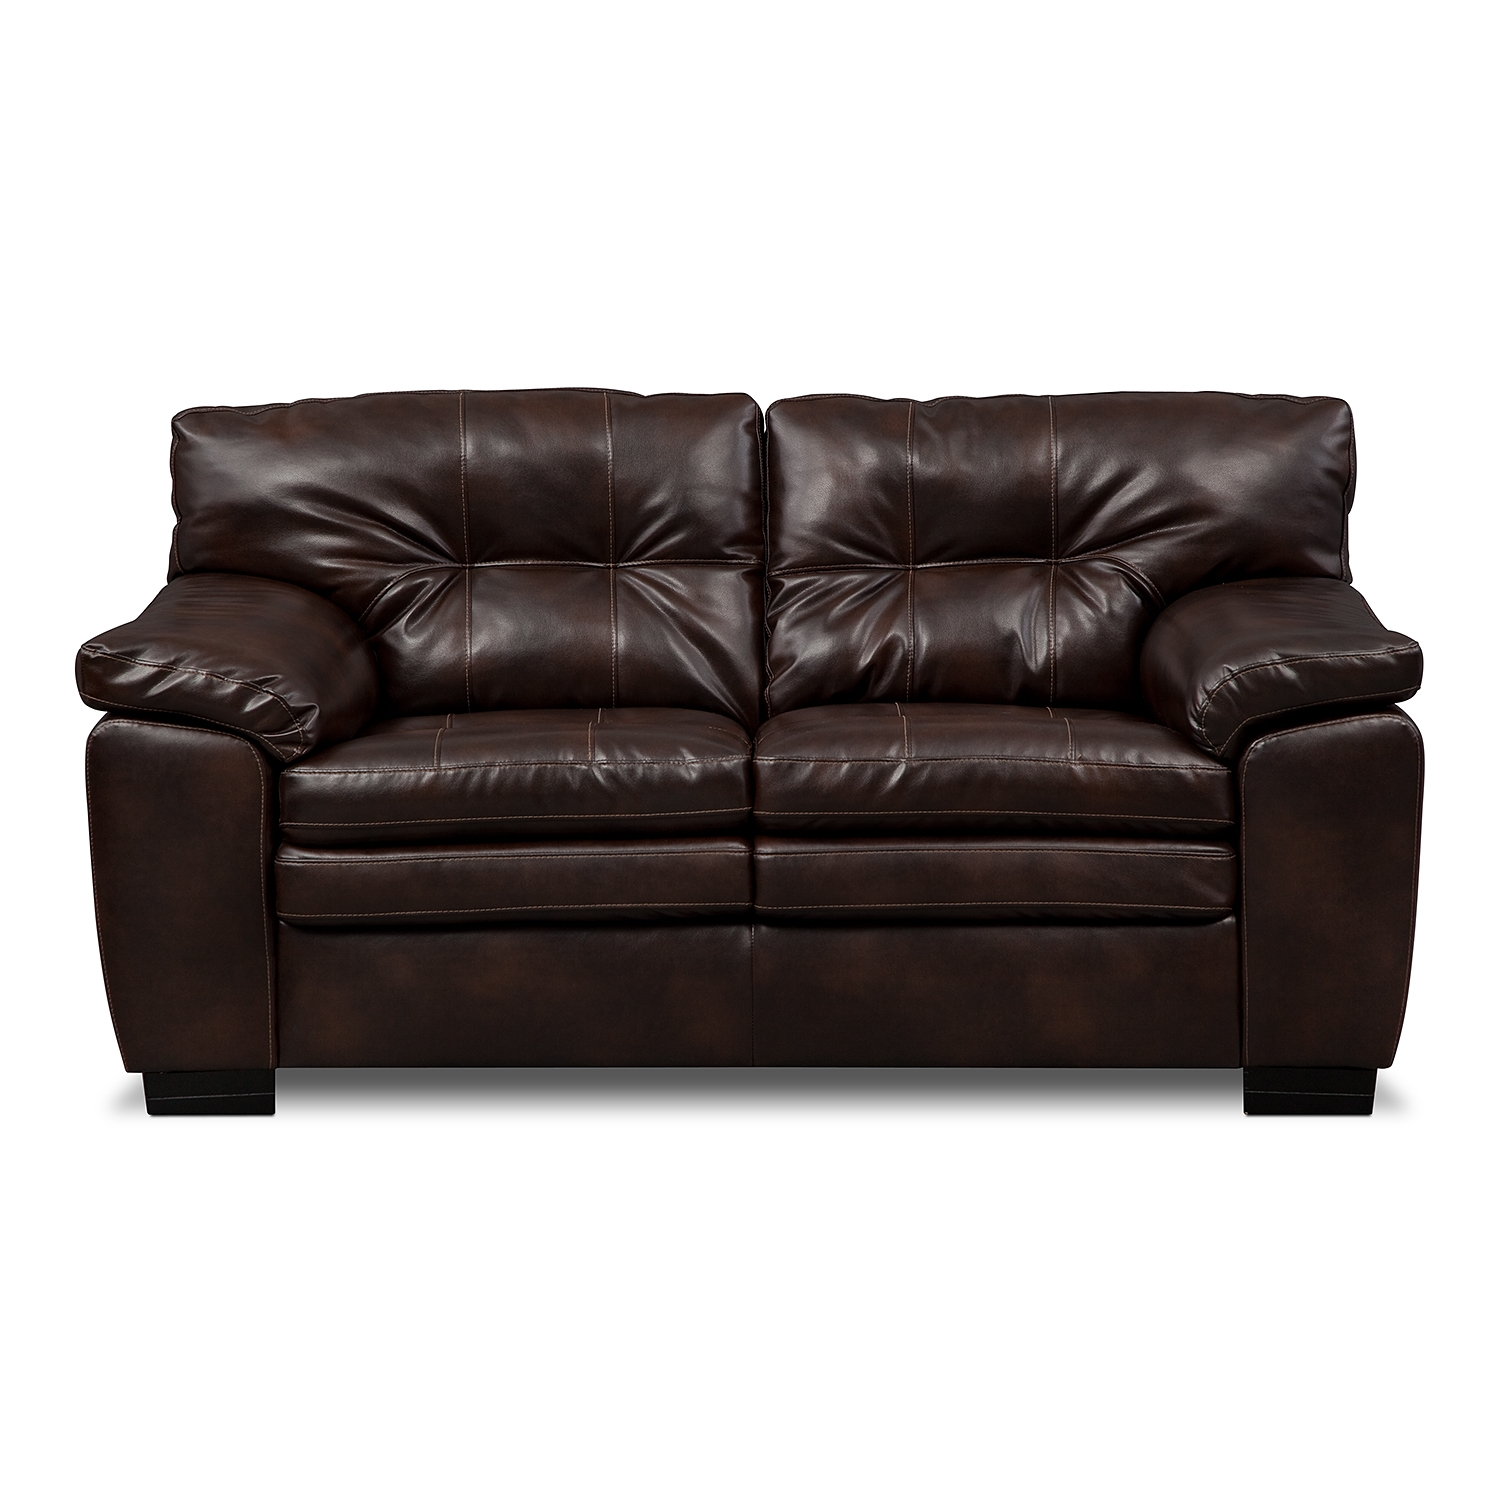 Convertible Loveseat Sofa Bed With Chaise Couch Sofa